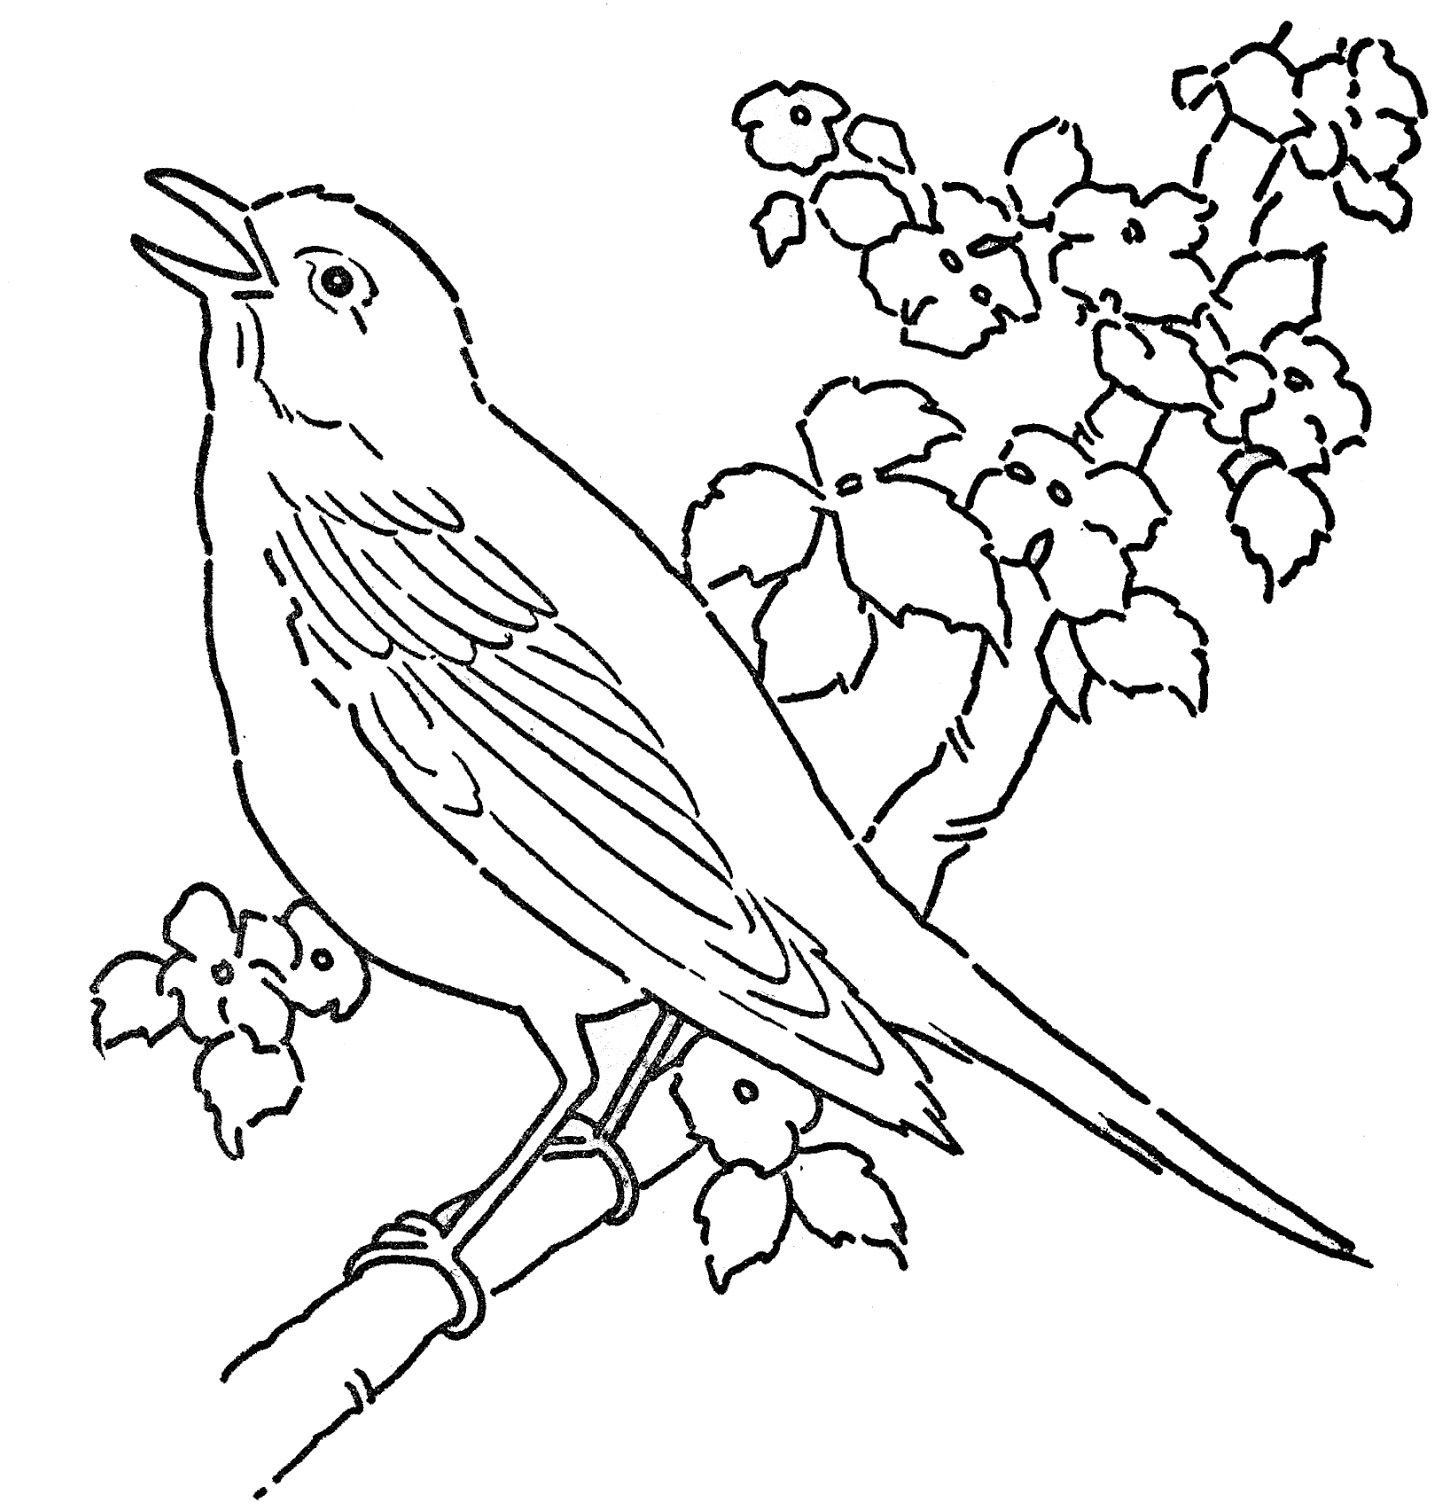 1449x1504 Bunch Ideas Of Coloring Pages Of Birds In The Rainforest For Great